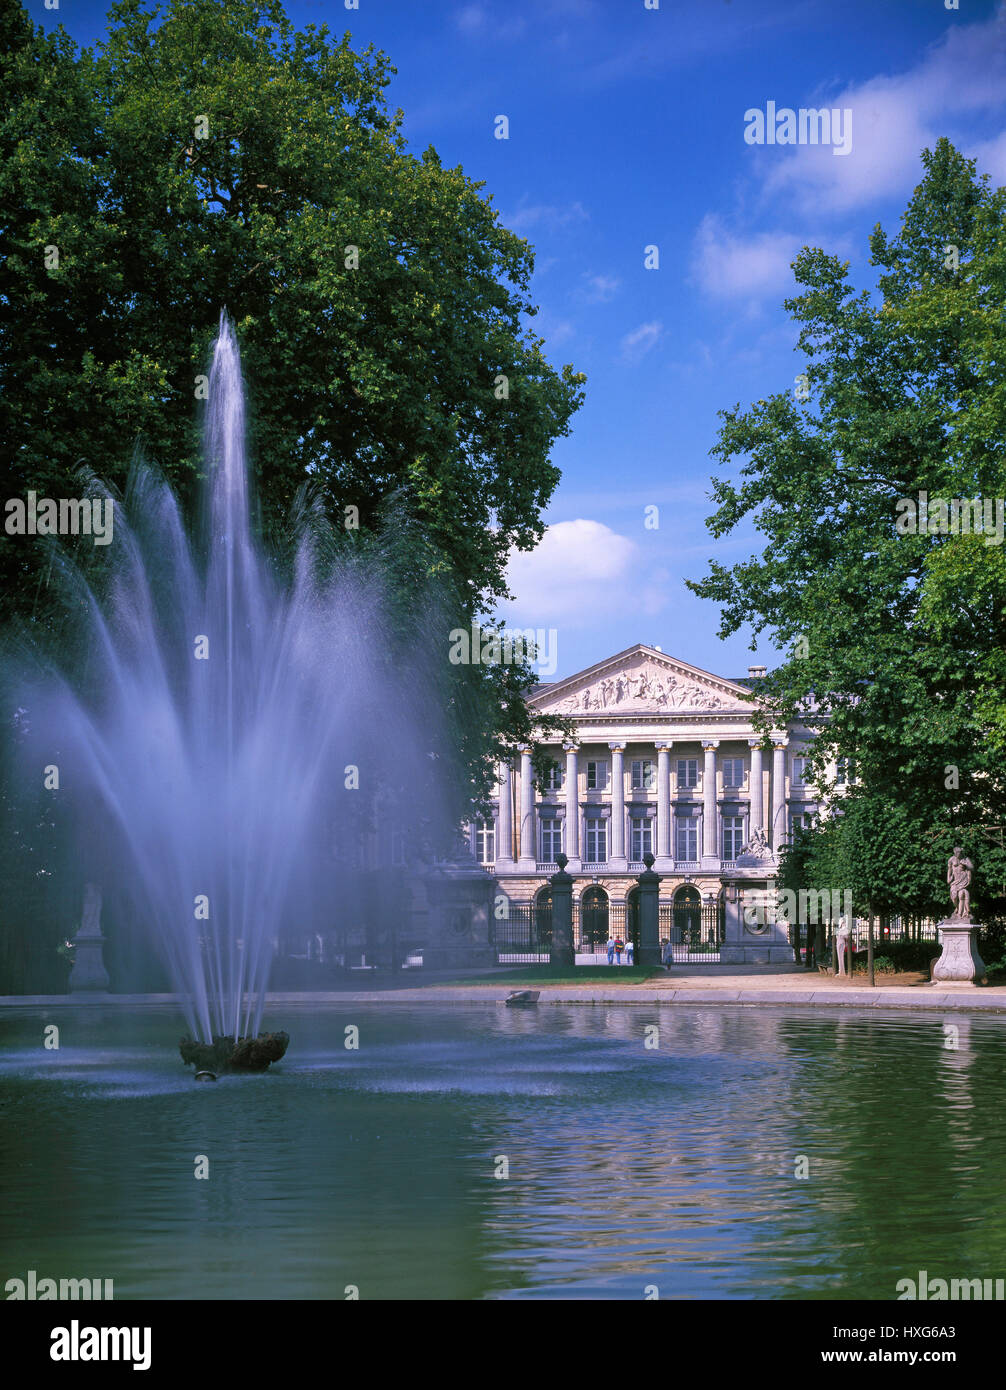 Palace of the Nation, the Royal Palace, Brussels, Belgium - Stock Image